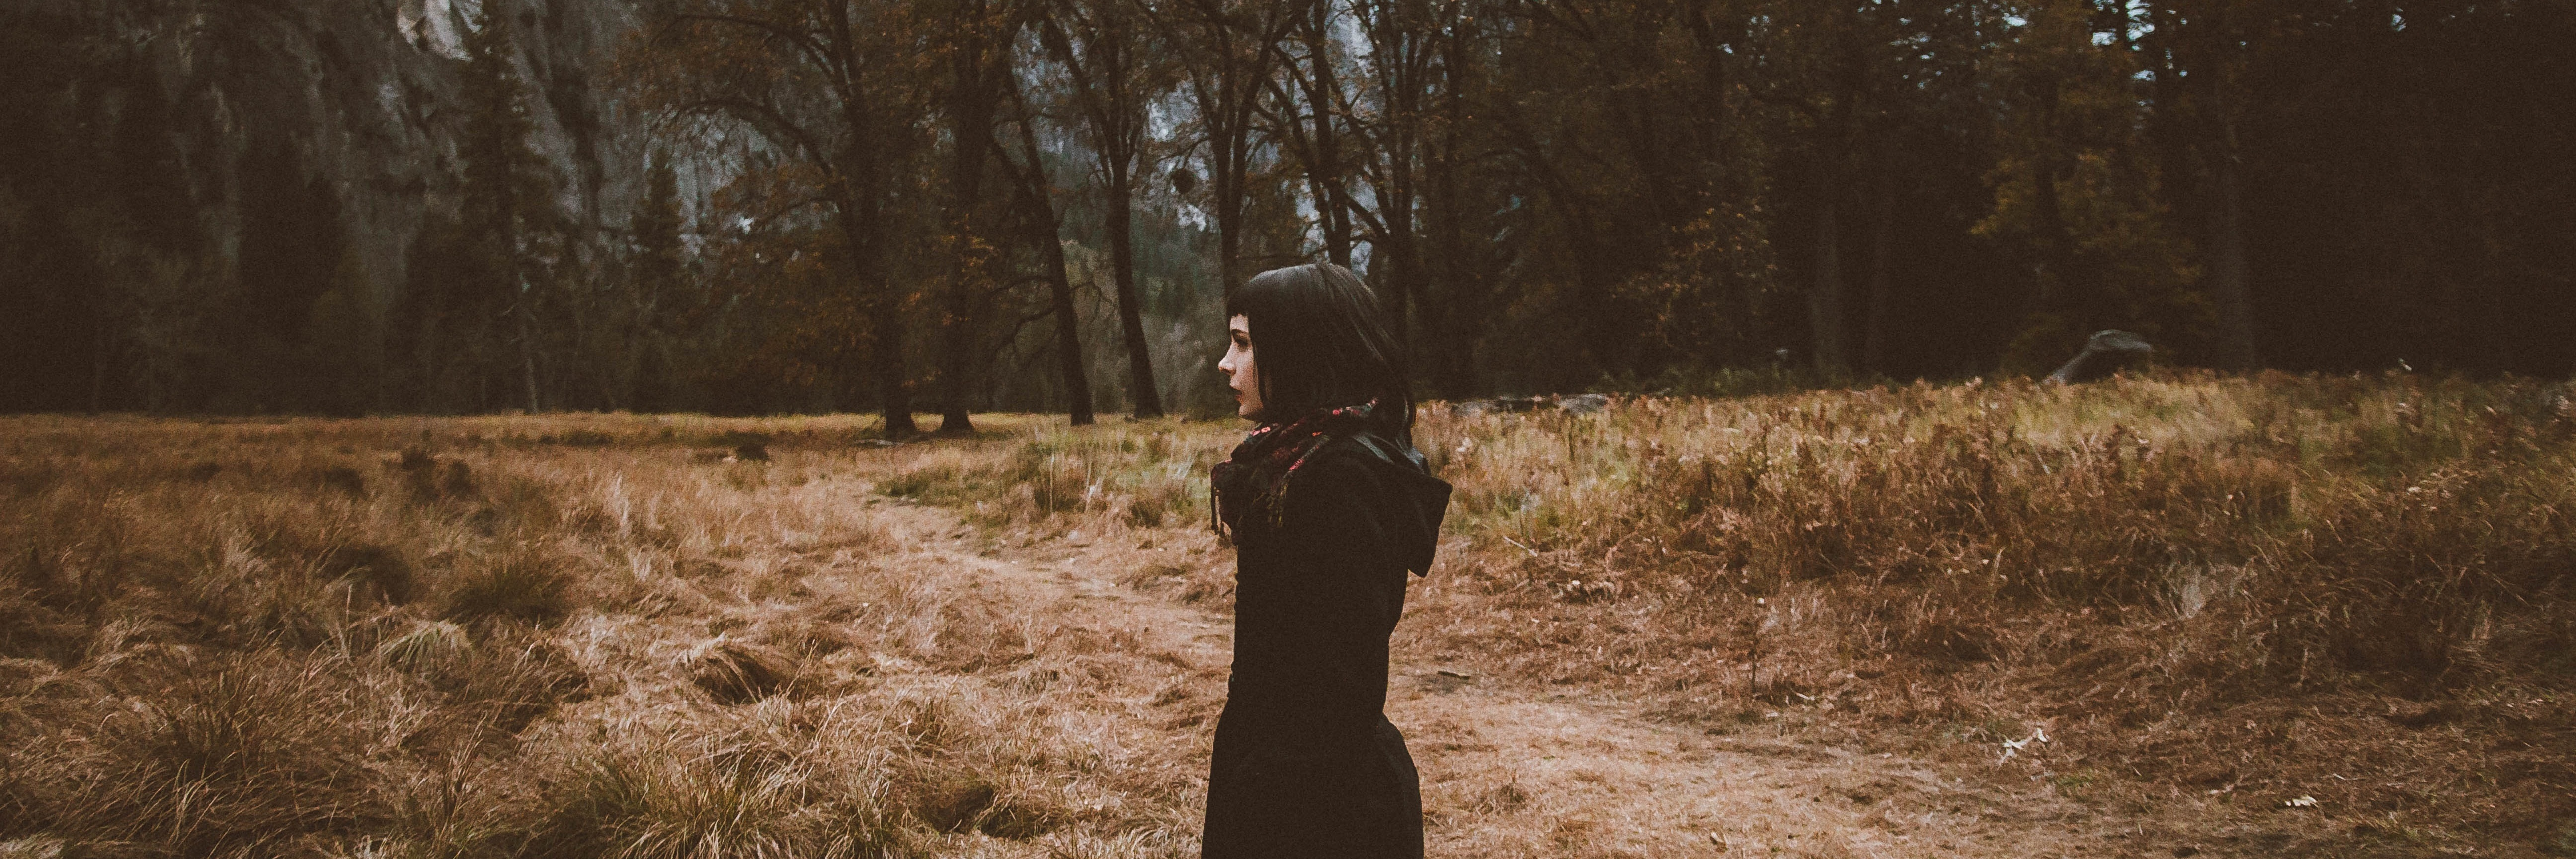 young woman in profile wearing dark clothes in nature by trees